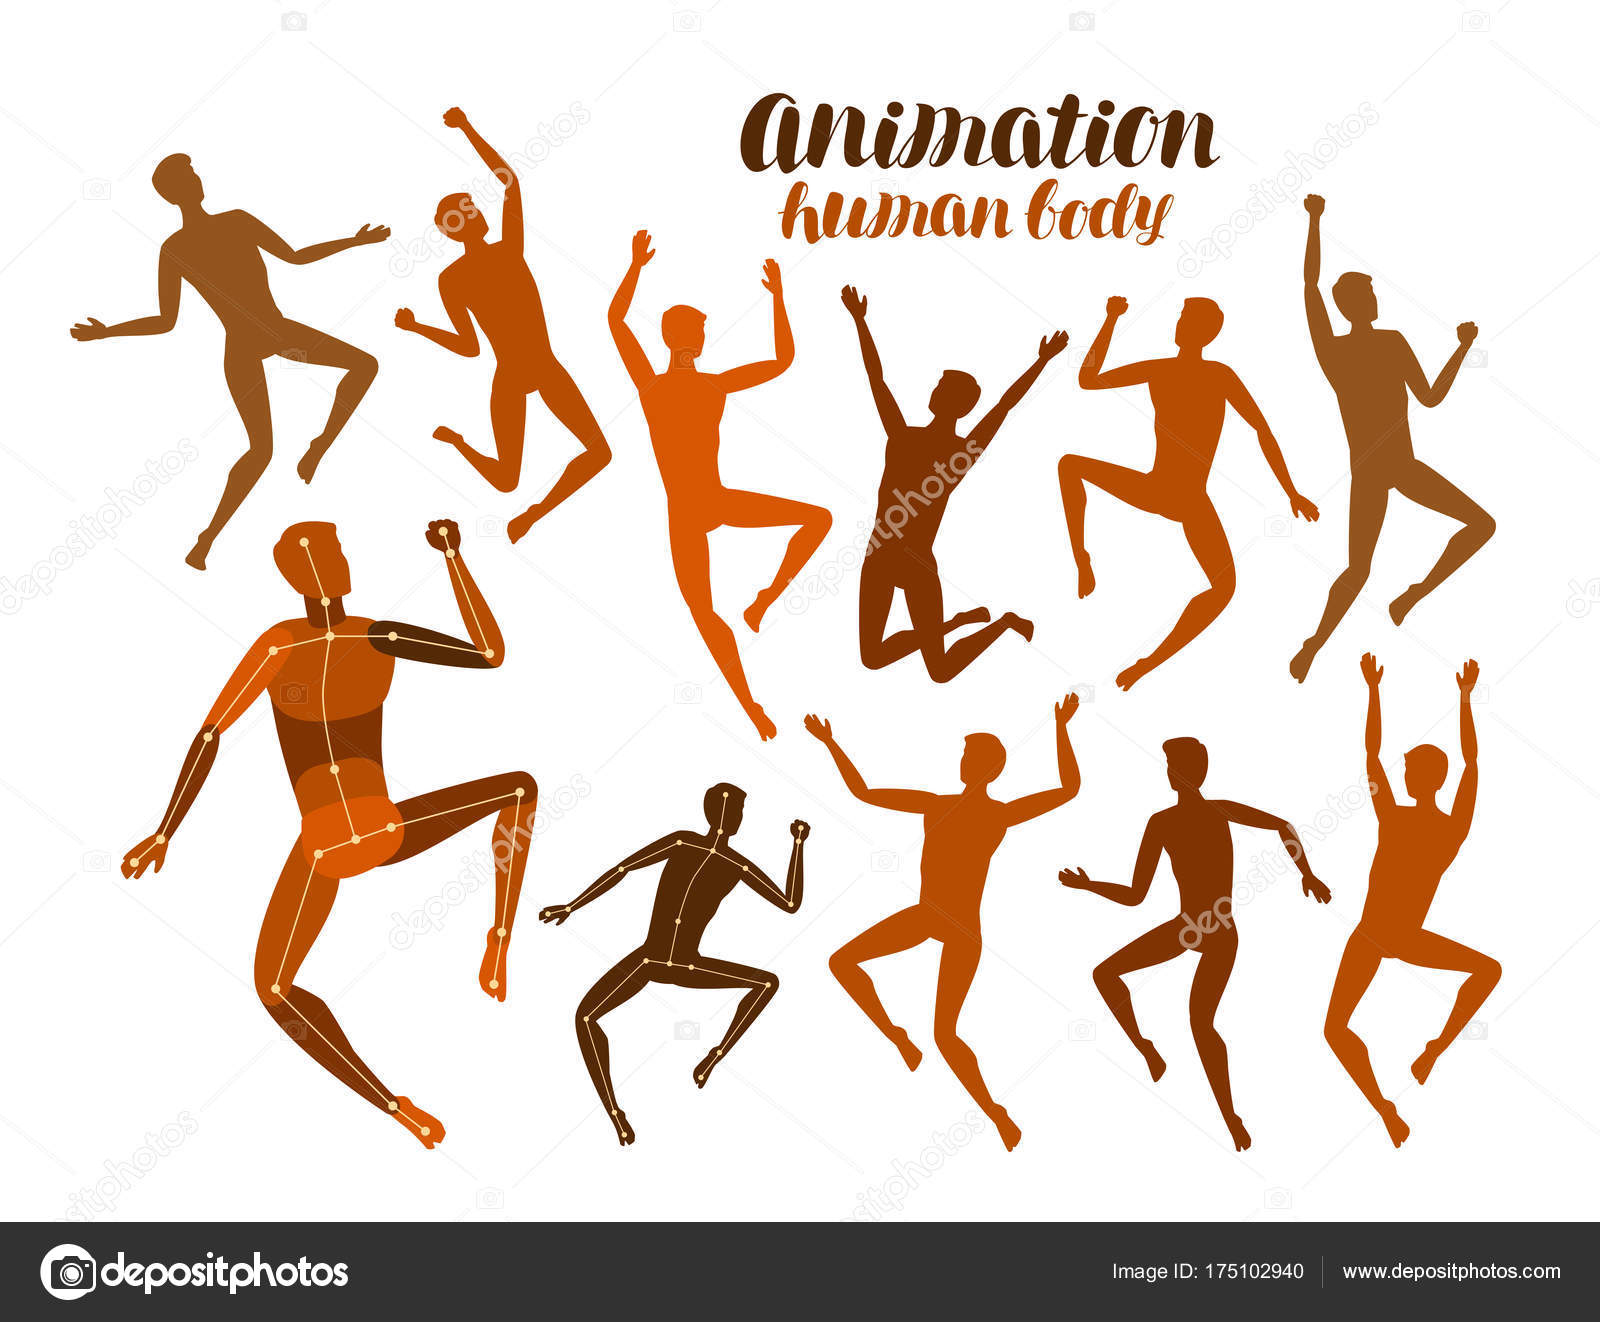 Animation Of Human Body Anatomy People In Motion Concept